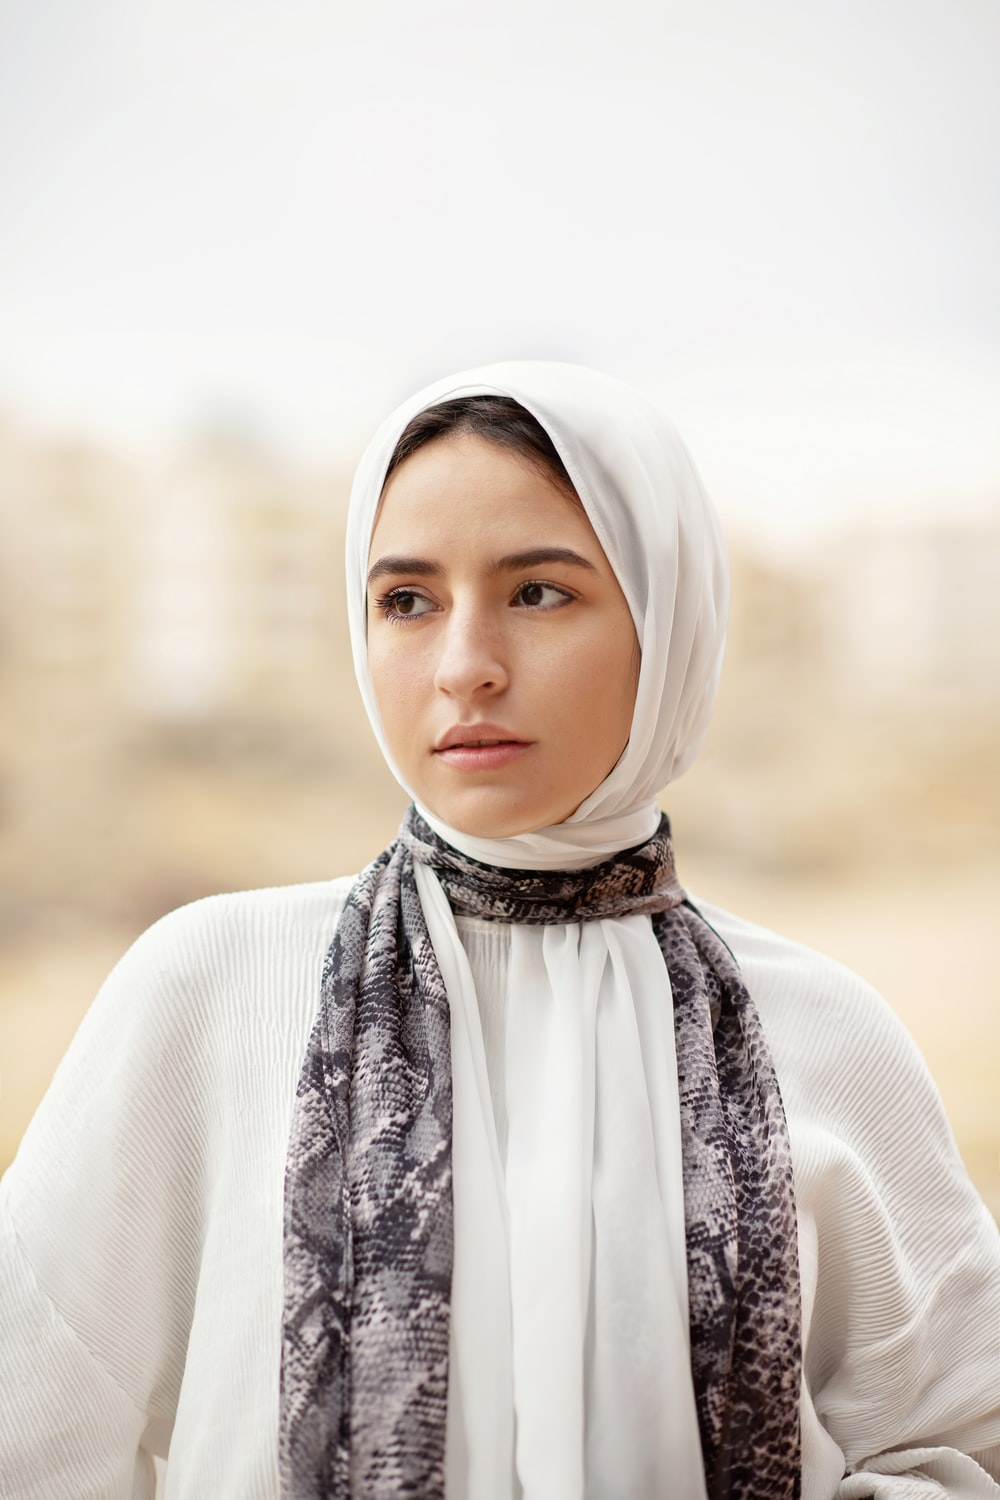 woman in white hijab and white long sleeve shirt